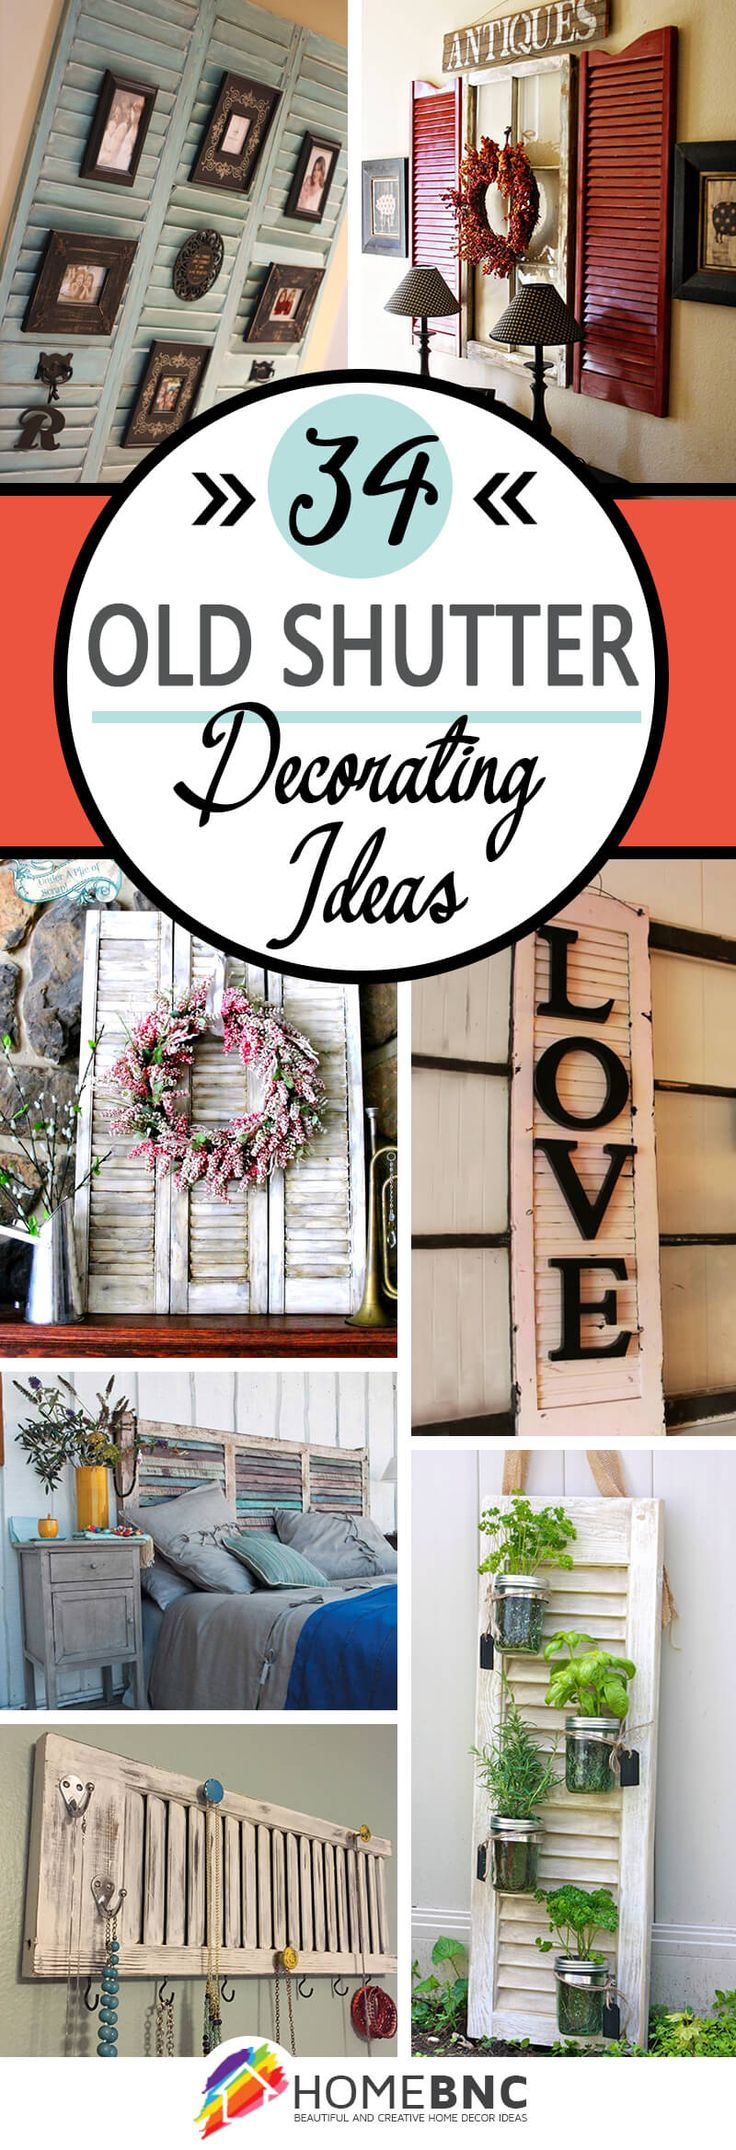 17 Best Ideas About Old Shutters On Pinterest Old